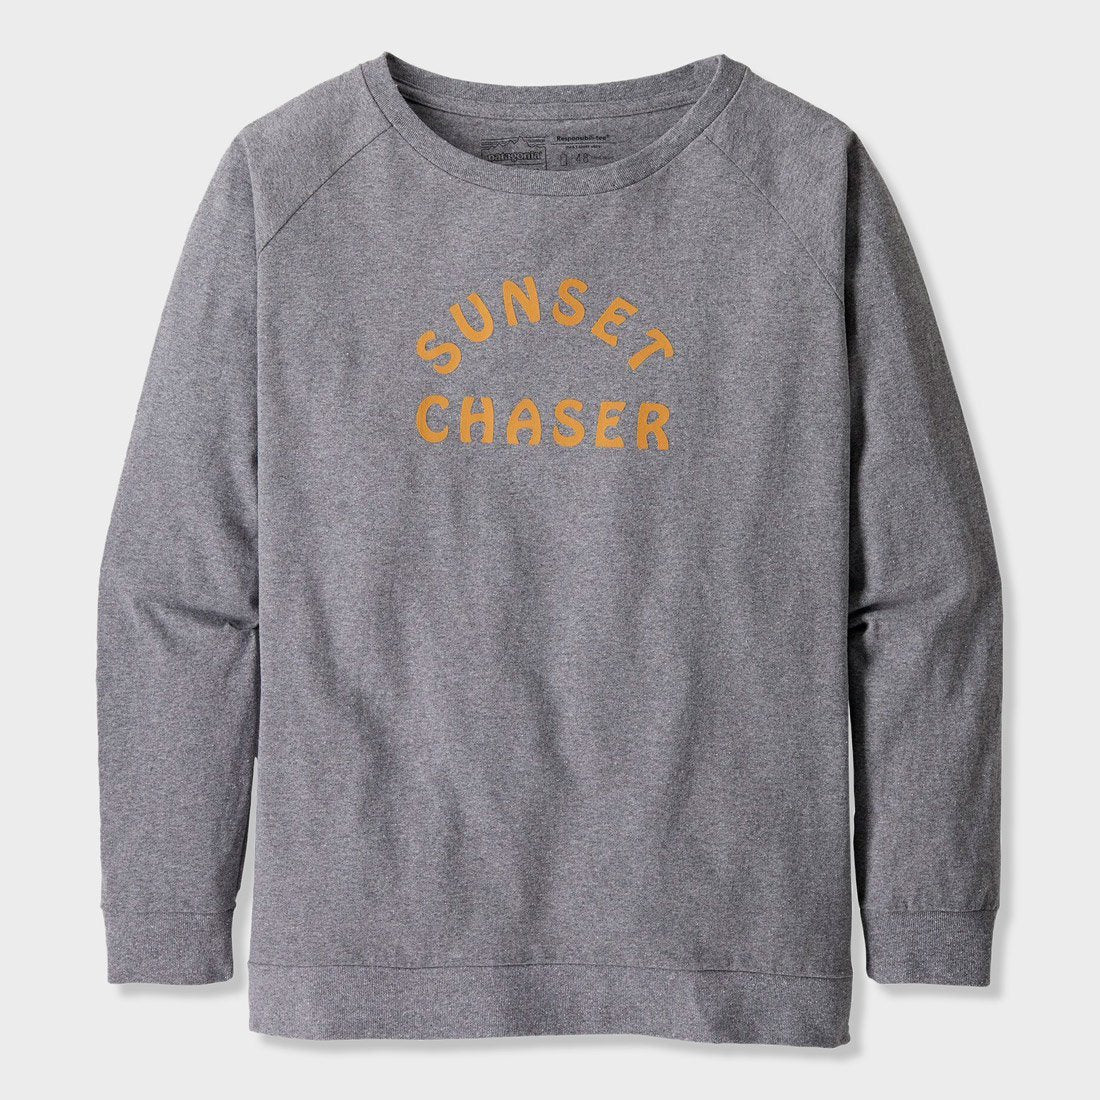 Patagonia Women's Camp I.D Responsibili-tee Gravel Heather w/ Sunset Chaser